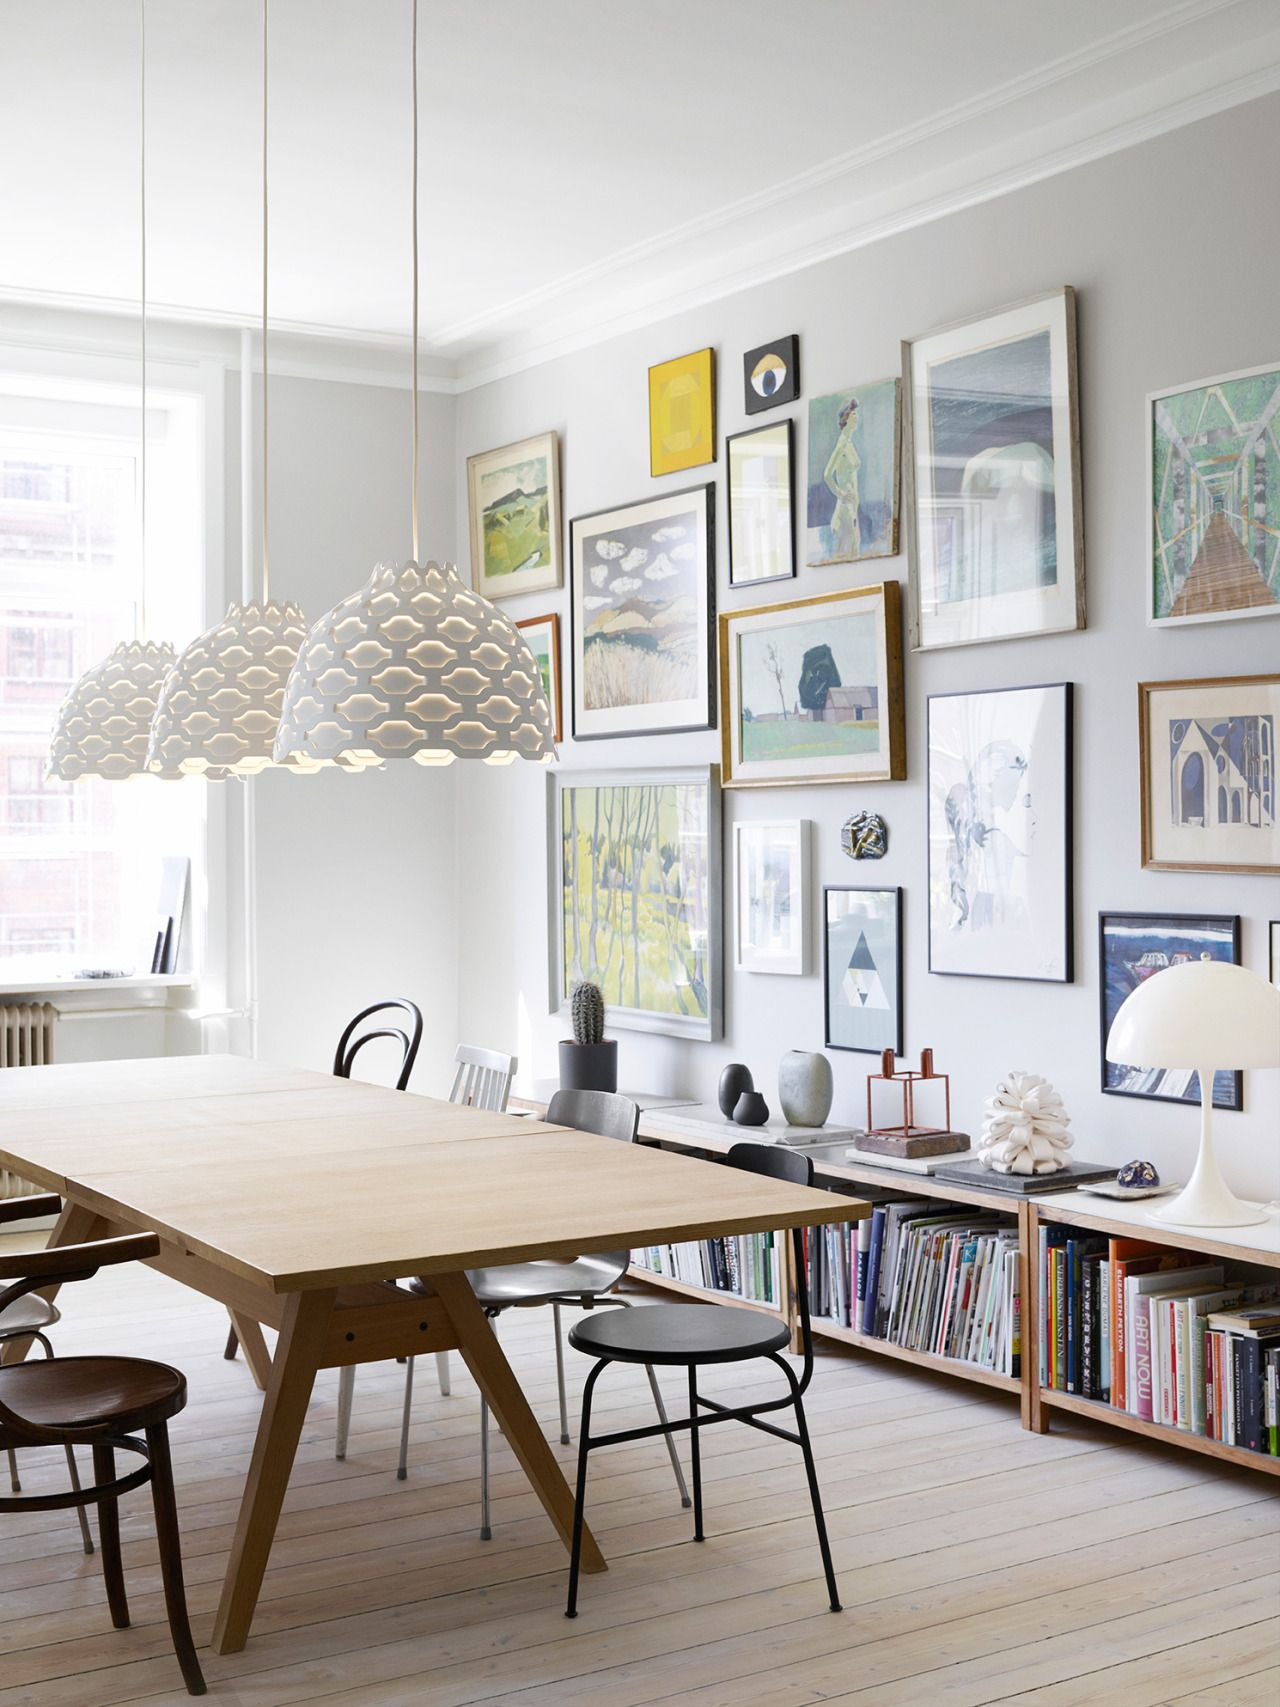 dining room with LC Shutter pendant lights, designed by Louise Campbell for Louis Poulsen | styling by Lene Rønfeldt